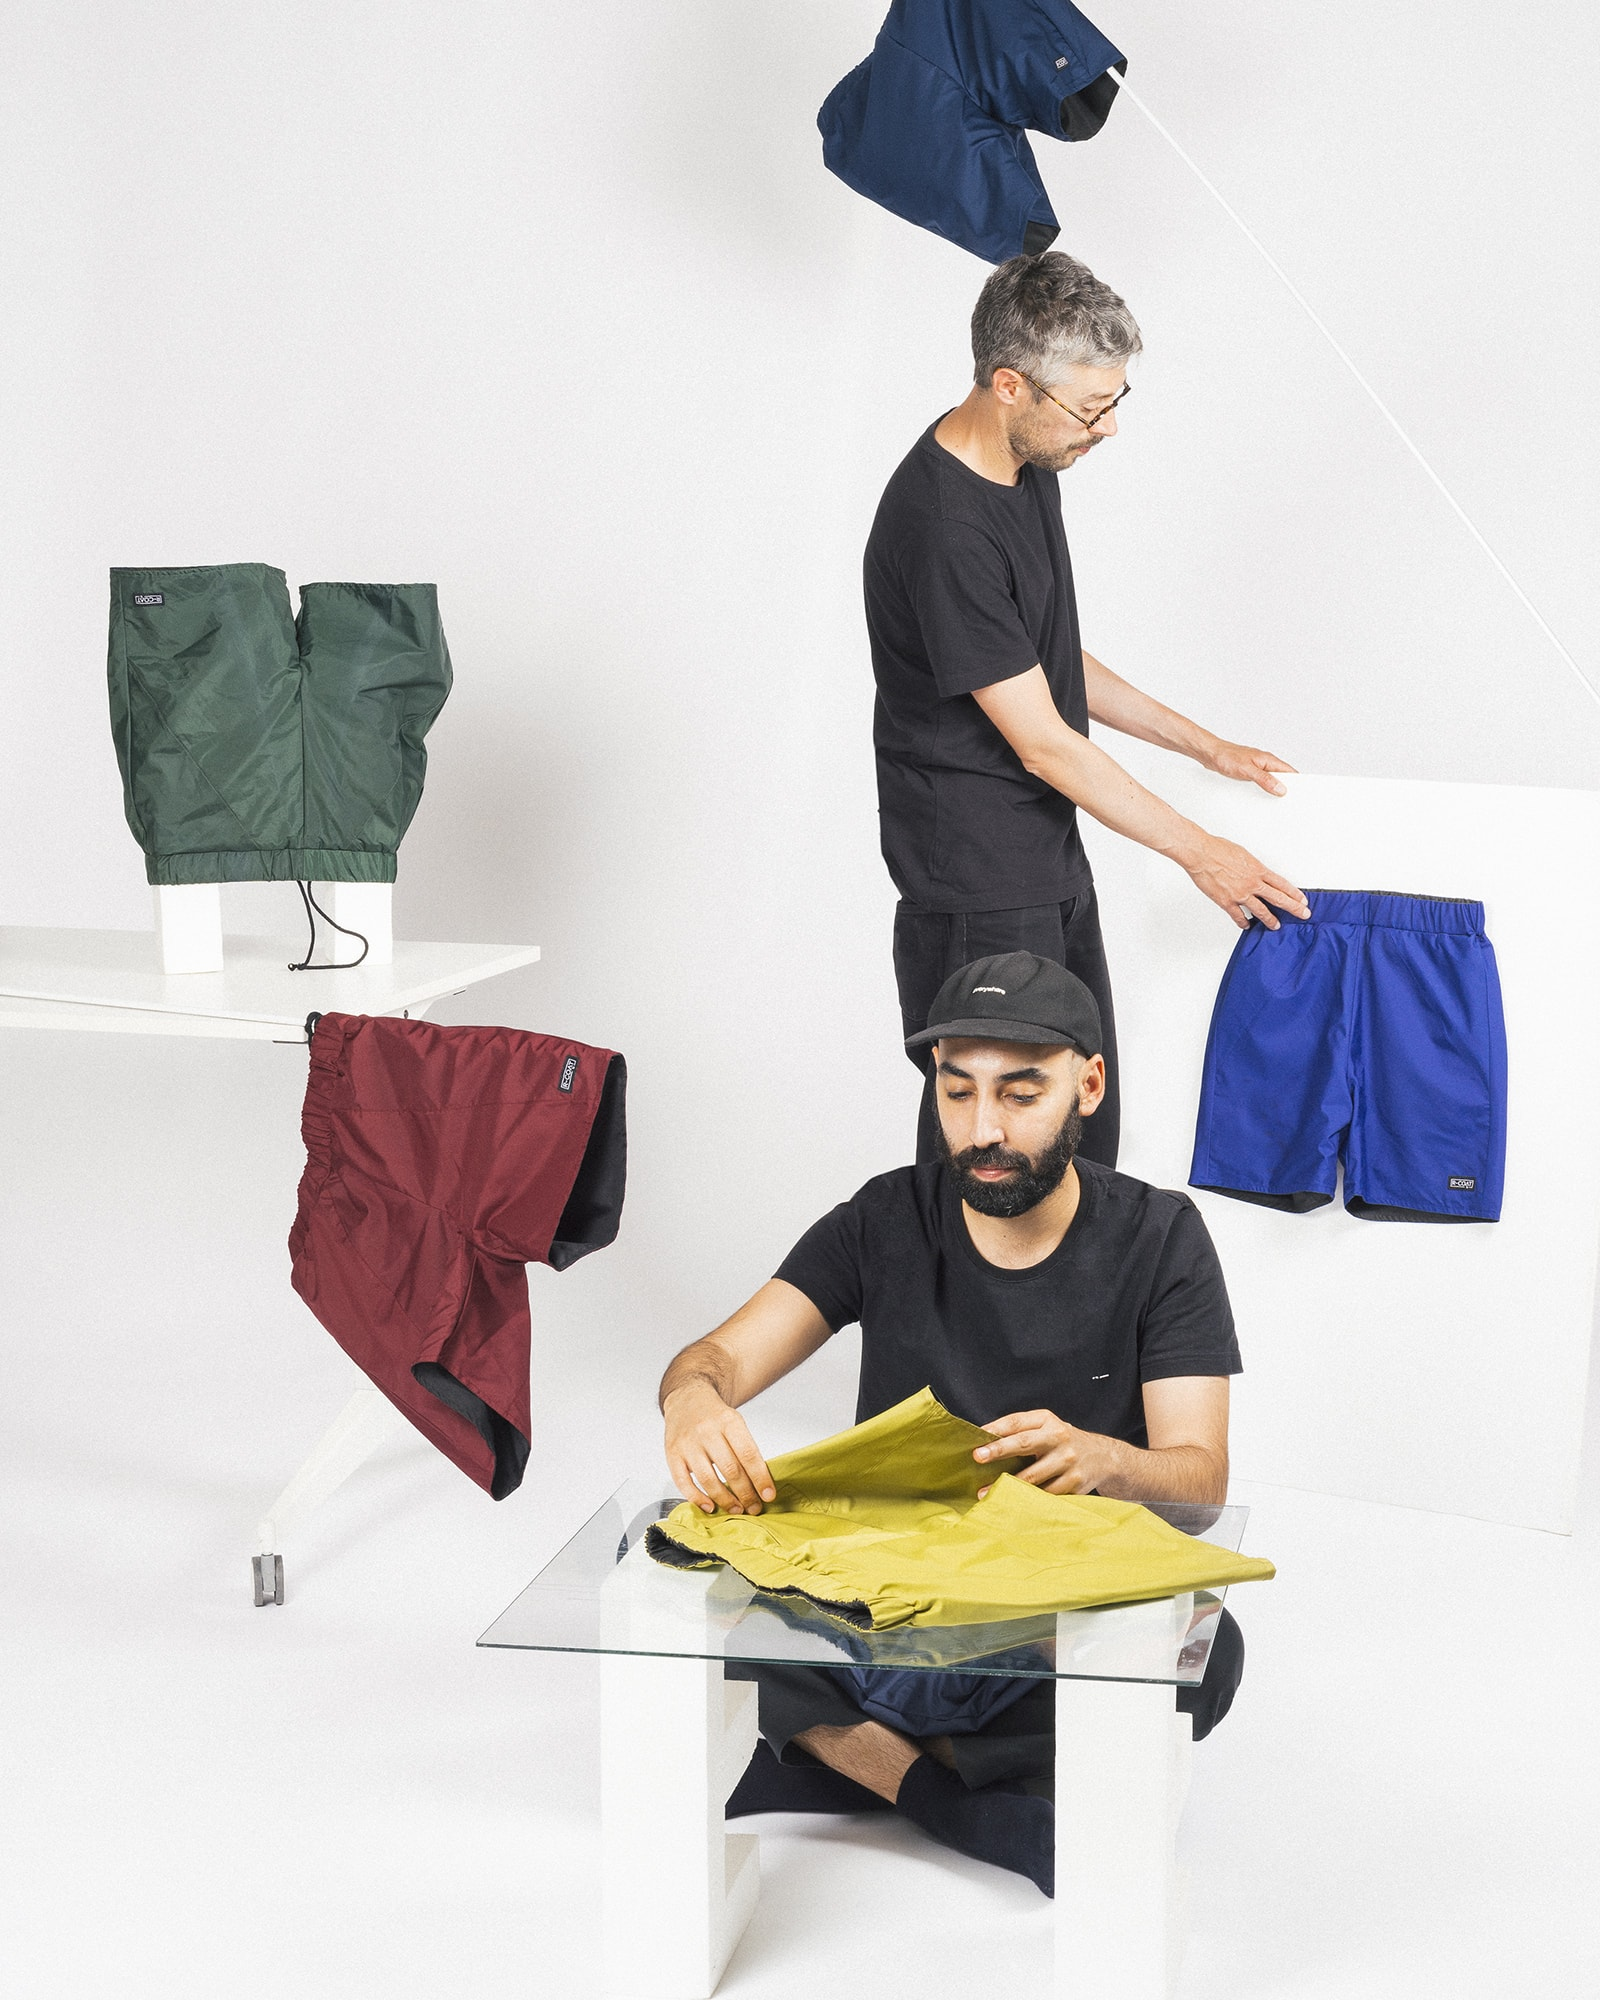 Filipe and Sérgio form wetheknot organizing the reversible shorts made from broken umbrellas, made in Lisbon, Portugal